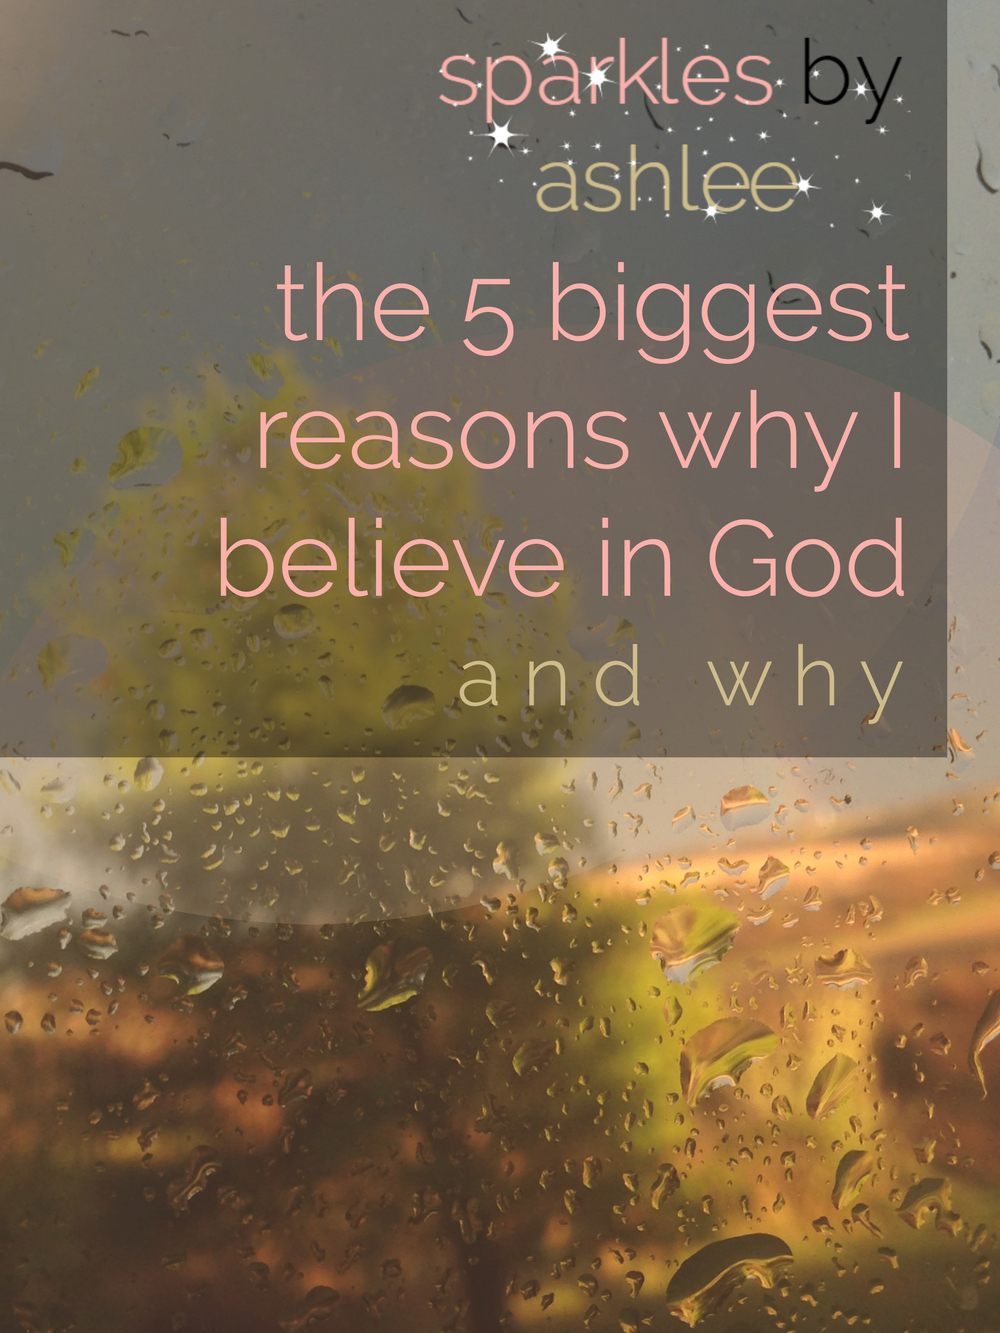 The-5-Biggest-Reasons-Why-I-Believe-in-God-Sparkles-by-Ashlee.jpg